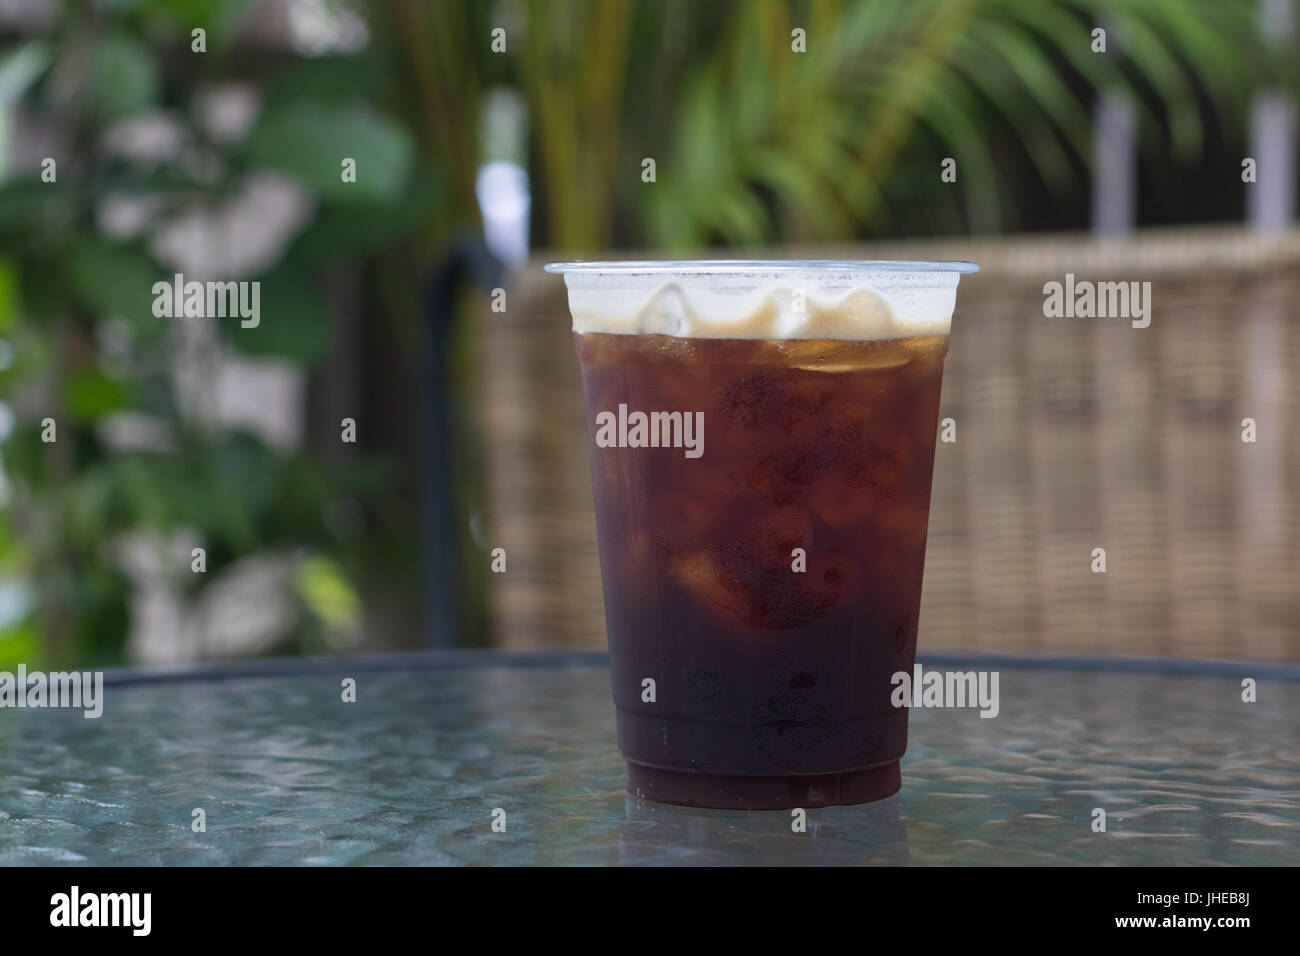 Sparkling Nitro cold brew coffee ready to drink in take away cup. - Stock Image